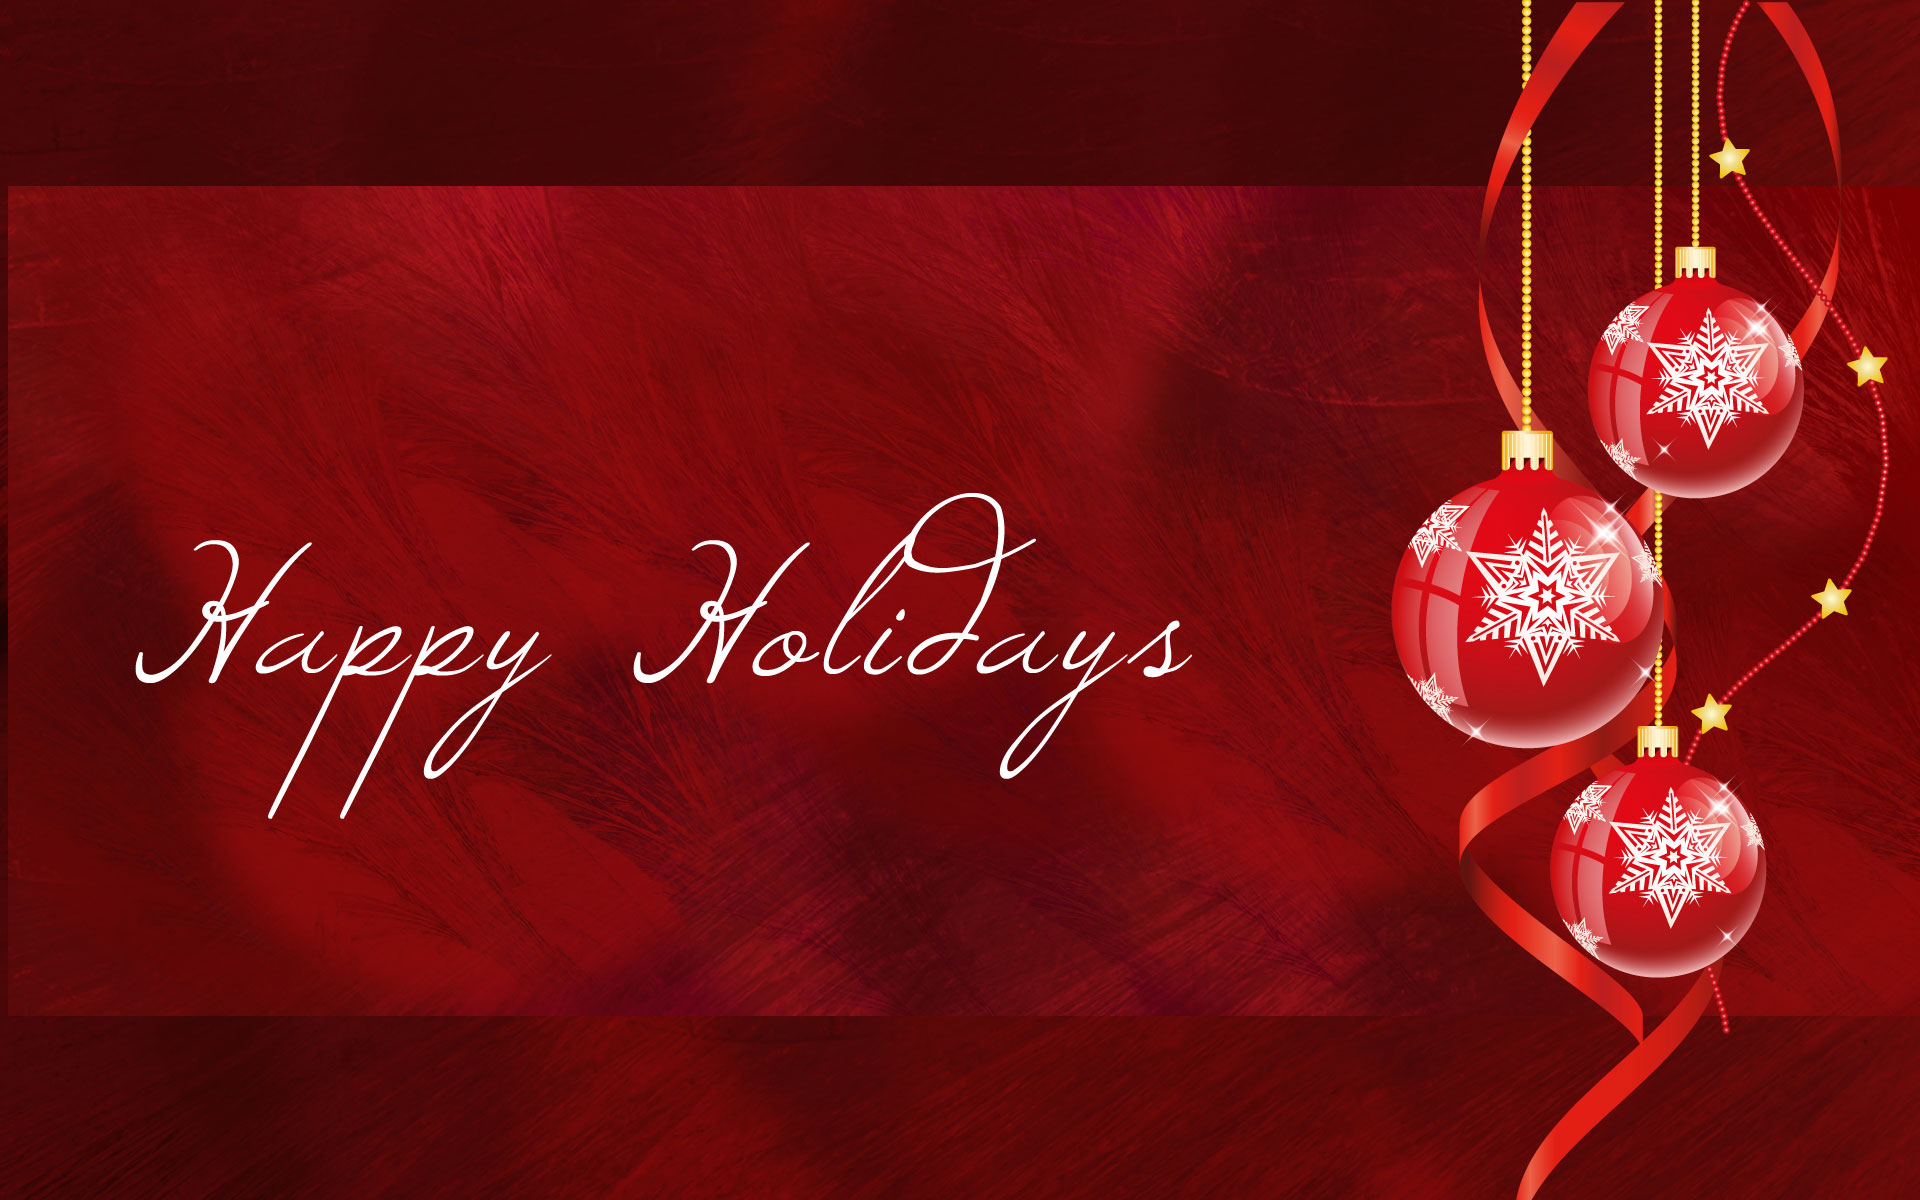 happy-holidays-white-red-ornaments-widescreen-wallpaper.jpg